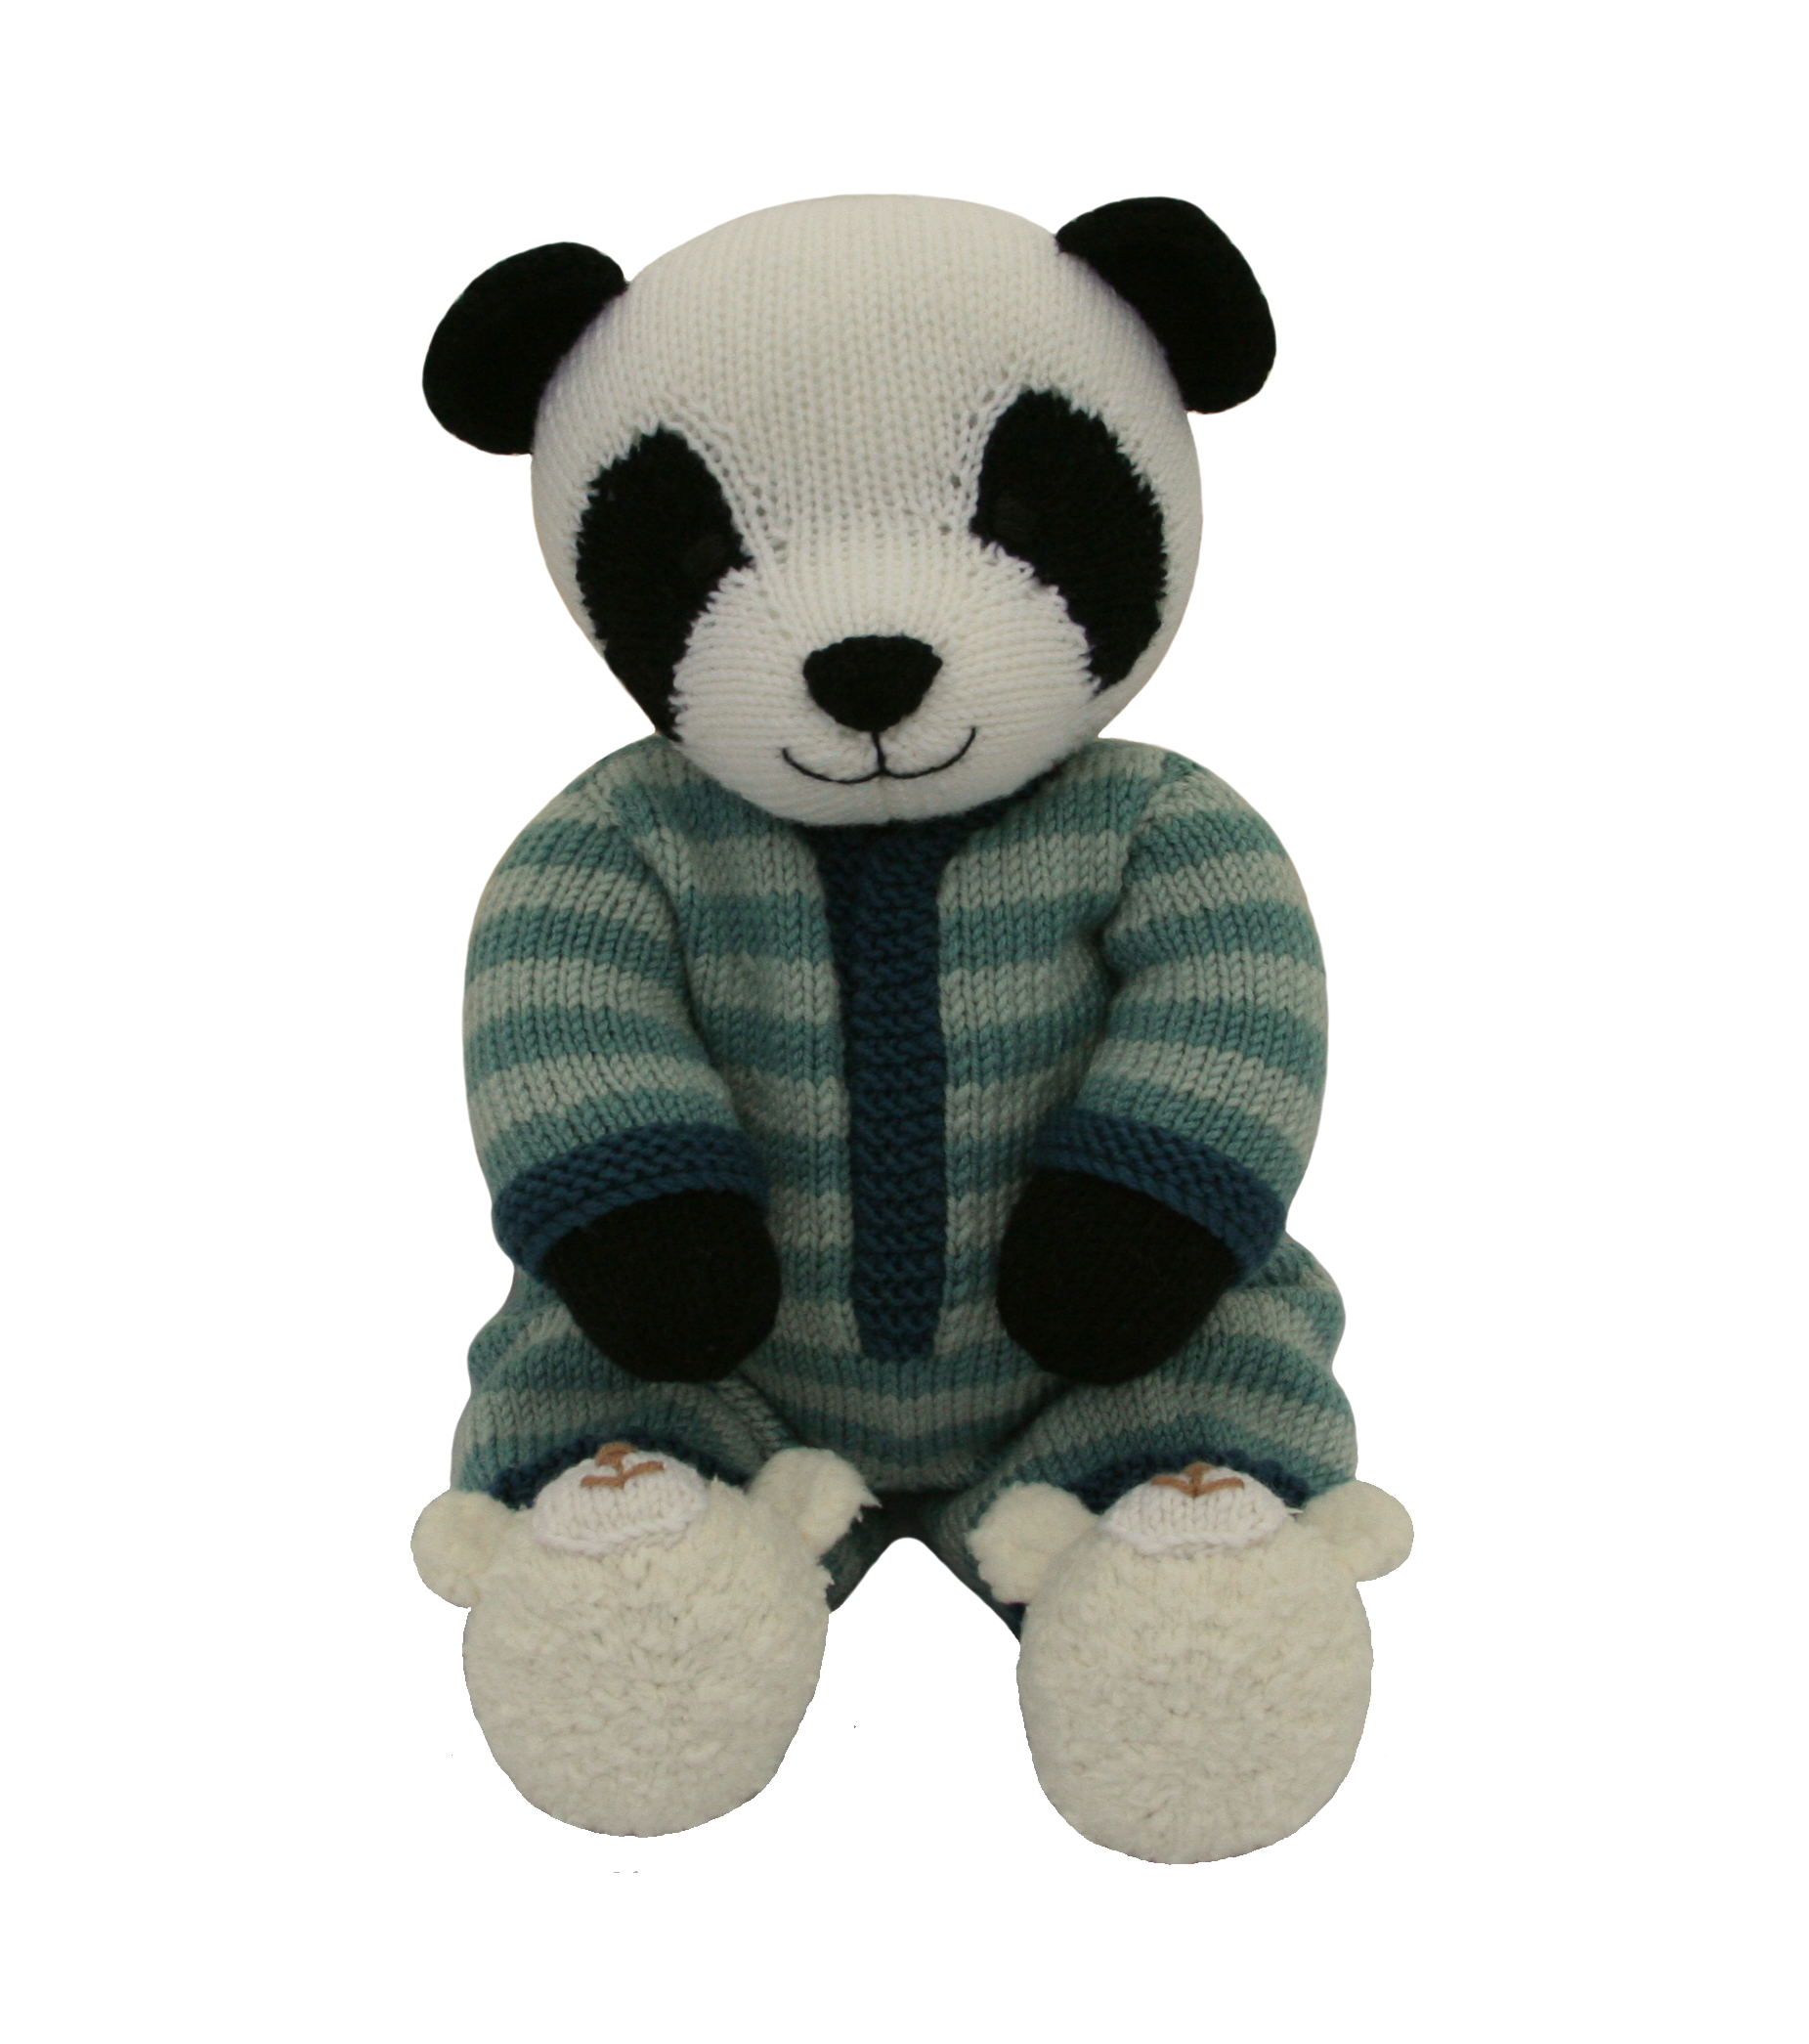 My latest pattern is a Panda in a onesie with cute teddy bear ...